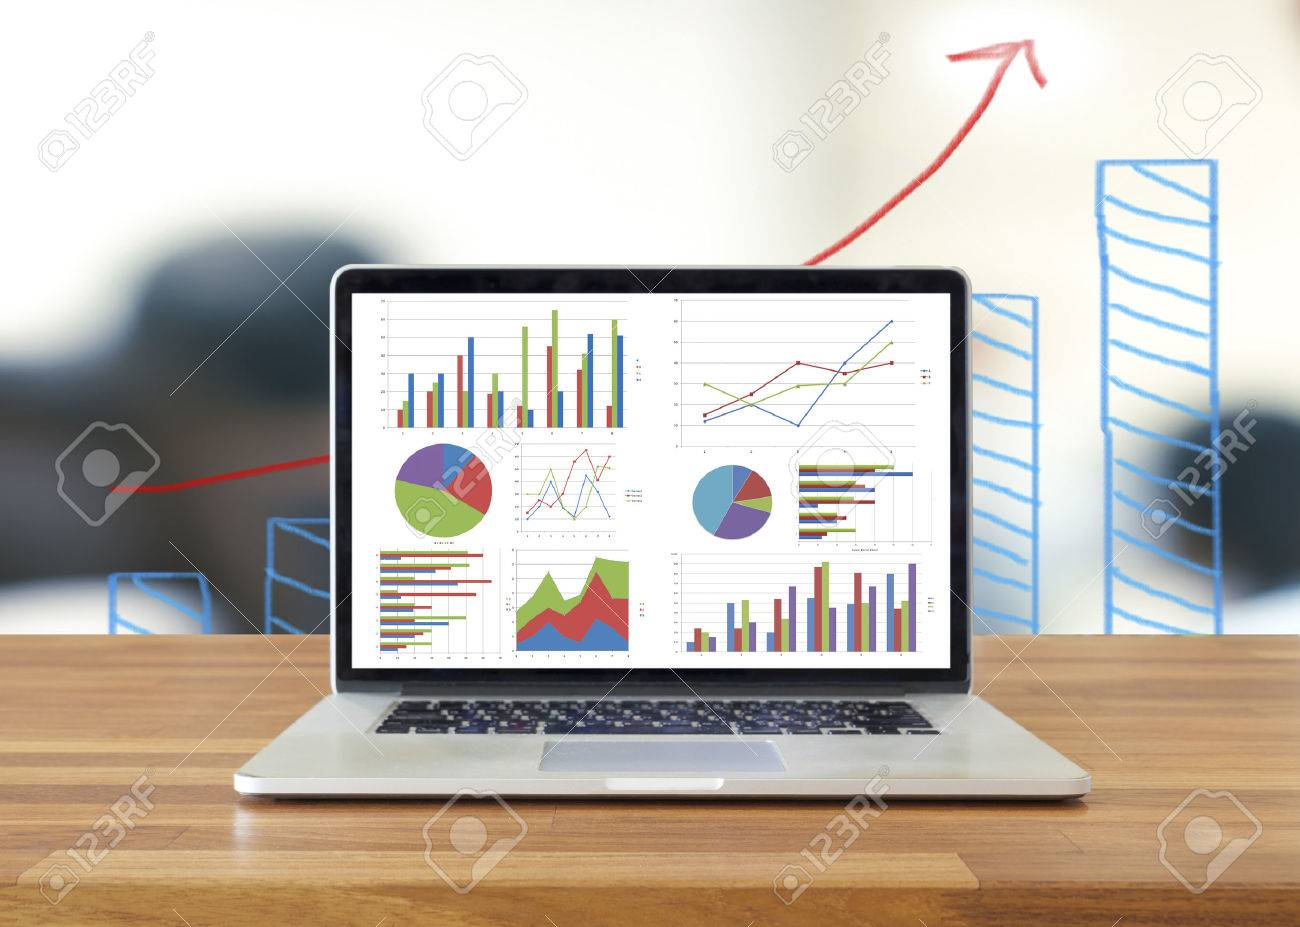 Laptop on wooden table showing charts and graph analysis business imagens laptop on wooden table showing charts and graph analysis business accounting statistics concept ccuart Image collections